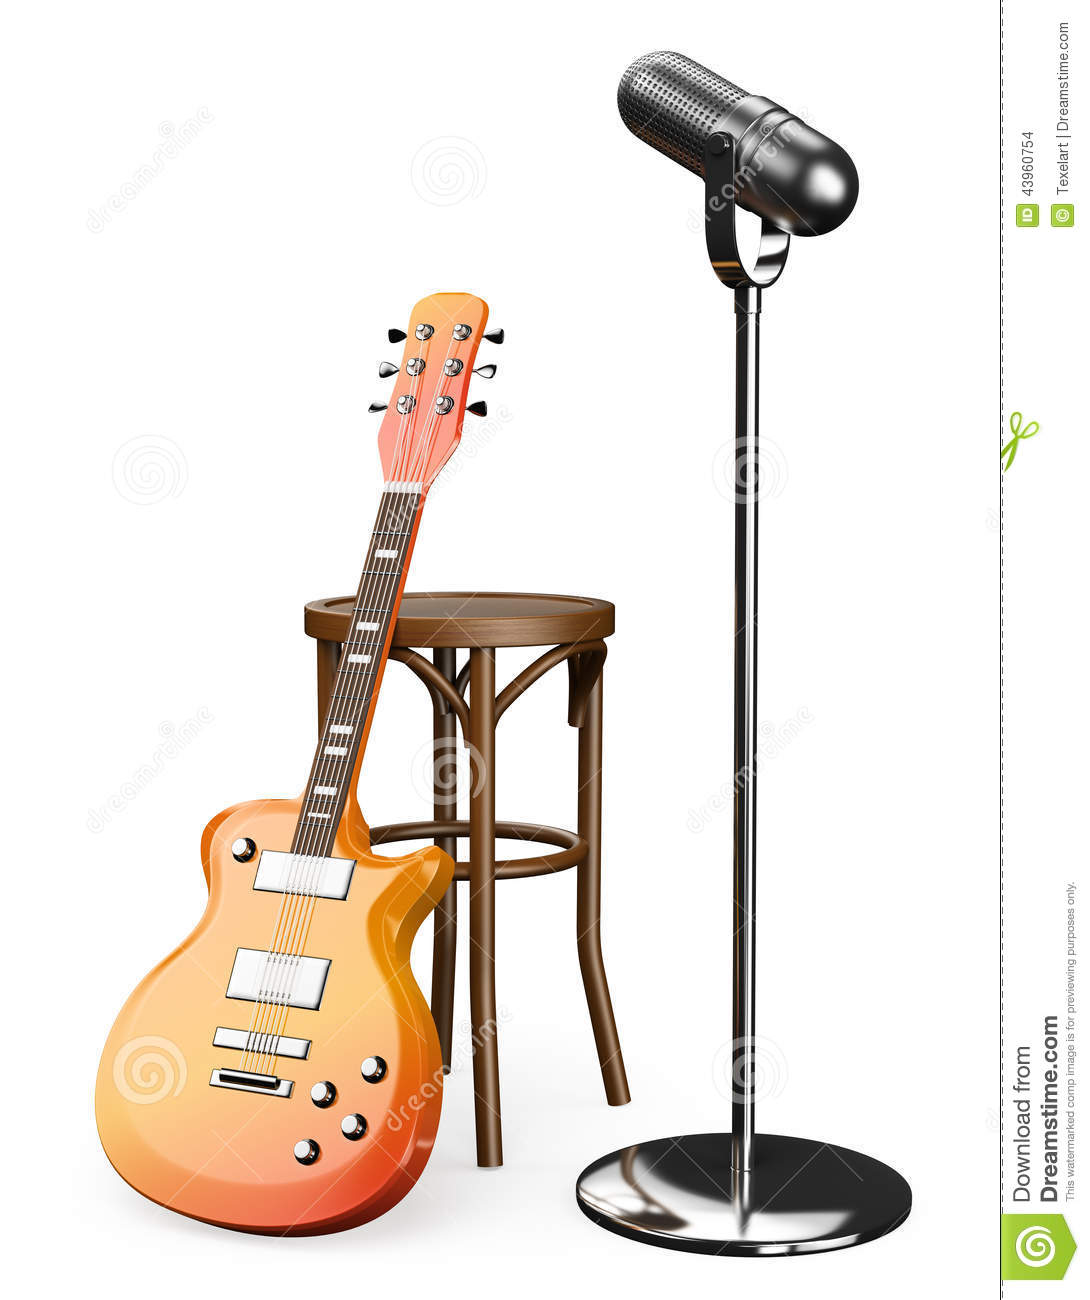 3D Electric Guitar Stool And Microphone Stock Illustration  : d electric guitar stool microphone white background 43960754 from www.dreamstime.com size 1090 x 1300 jpeg 104kB